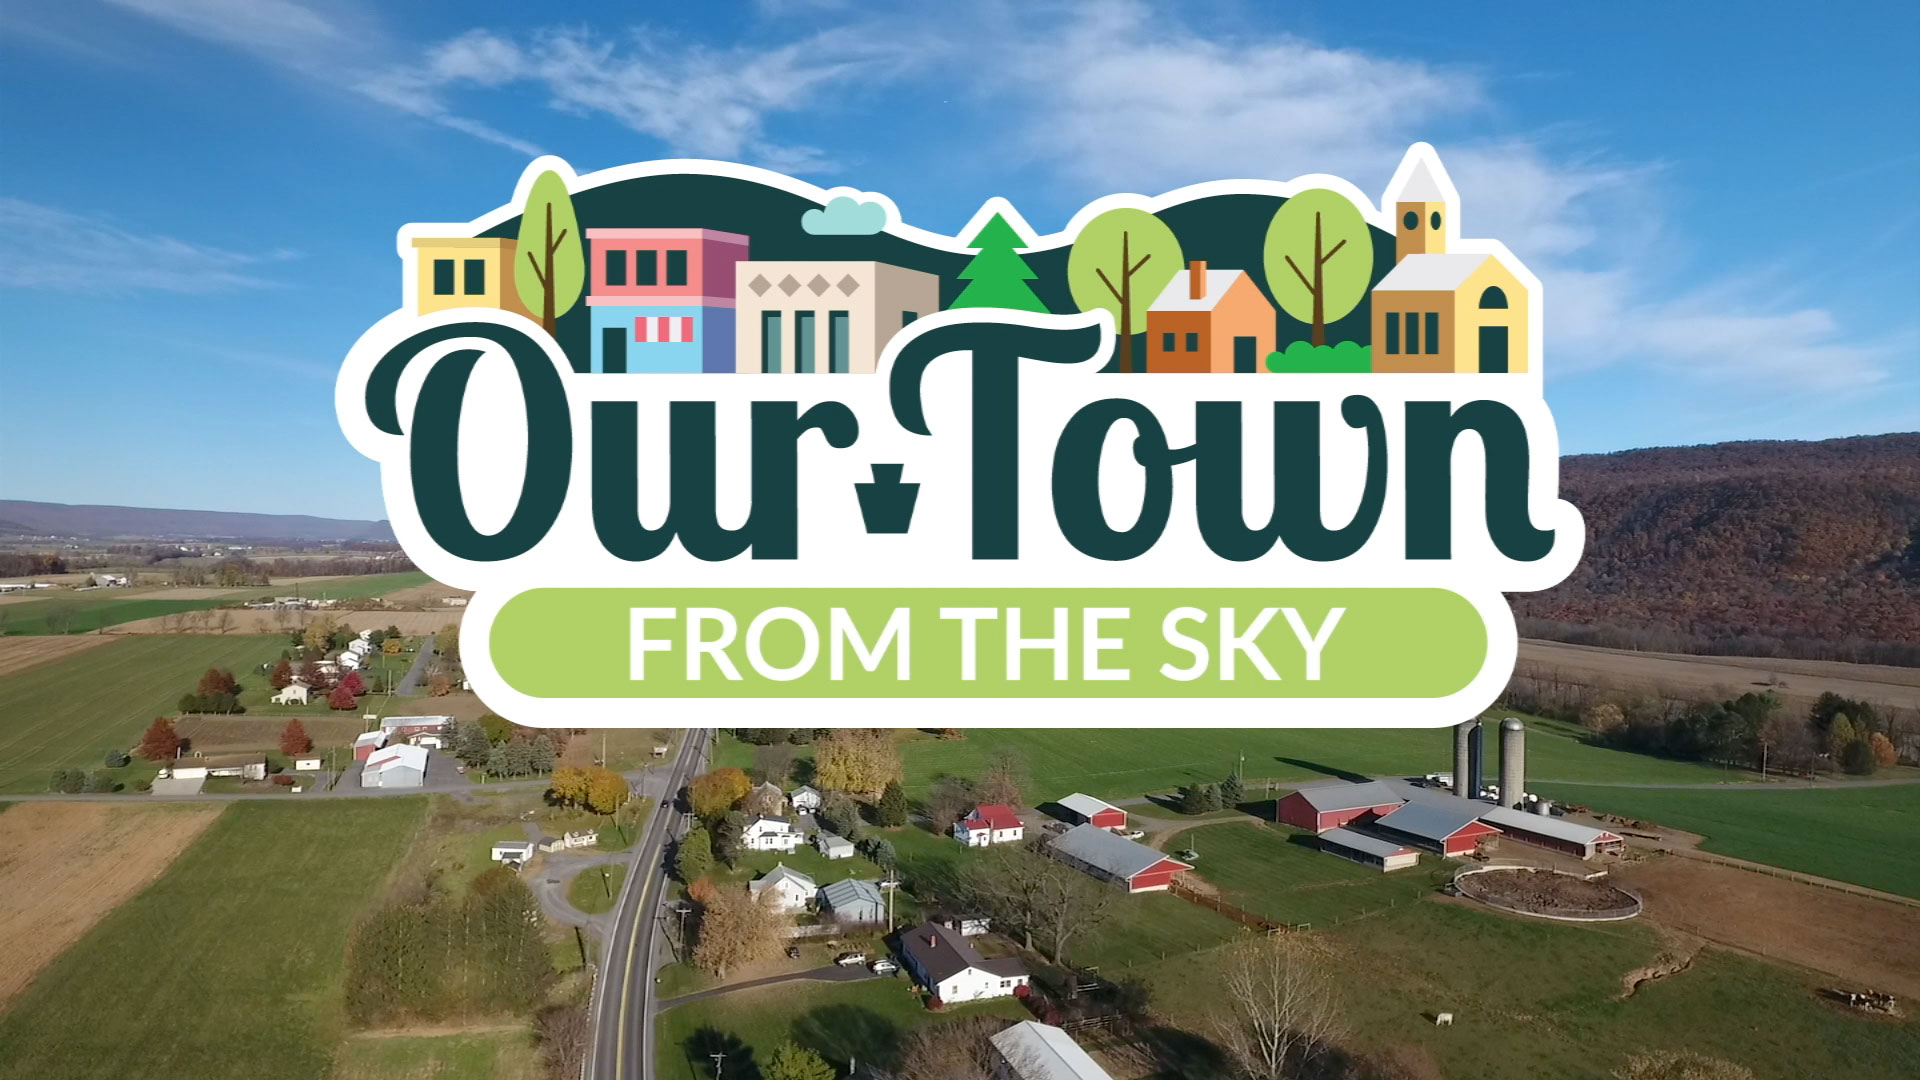 Our Town from the Sky